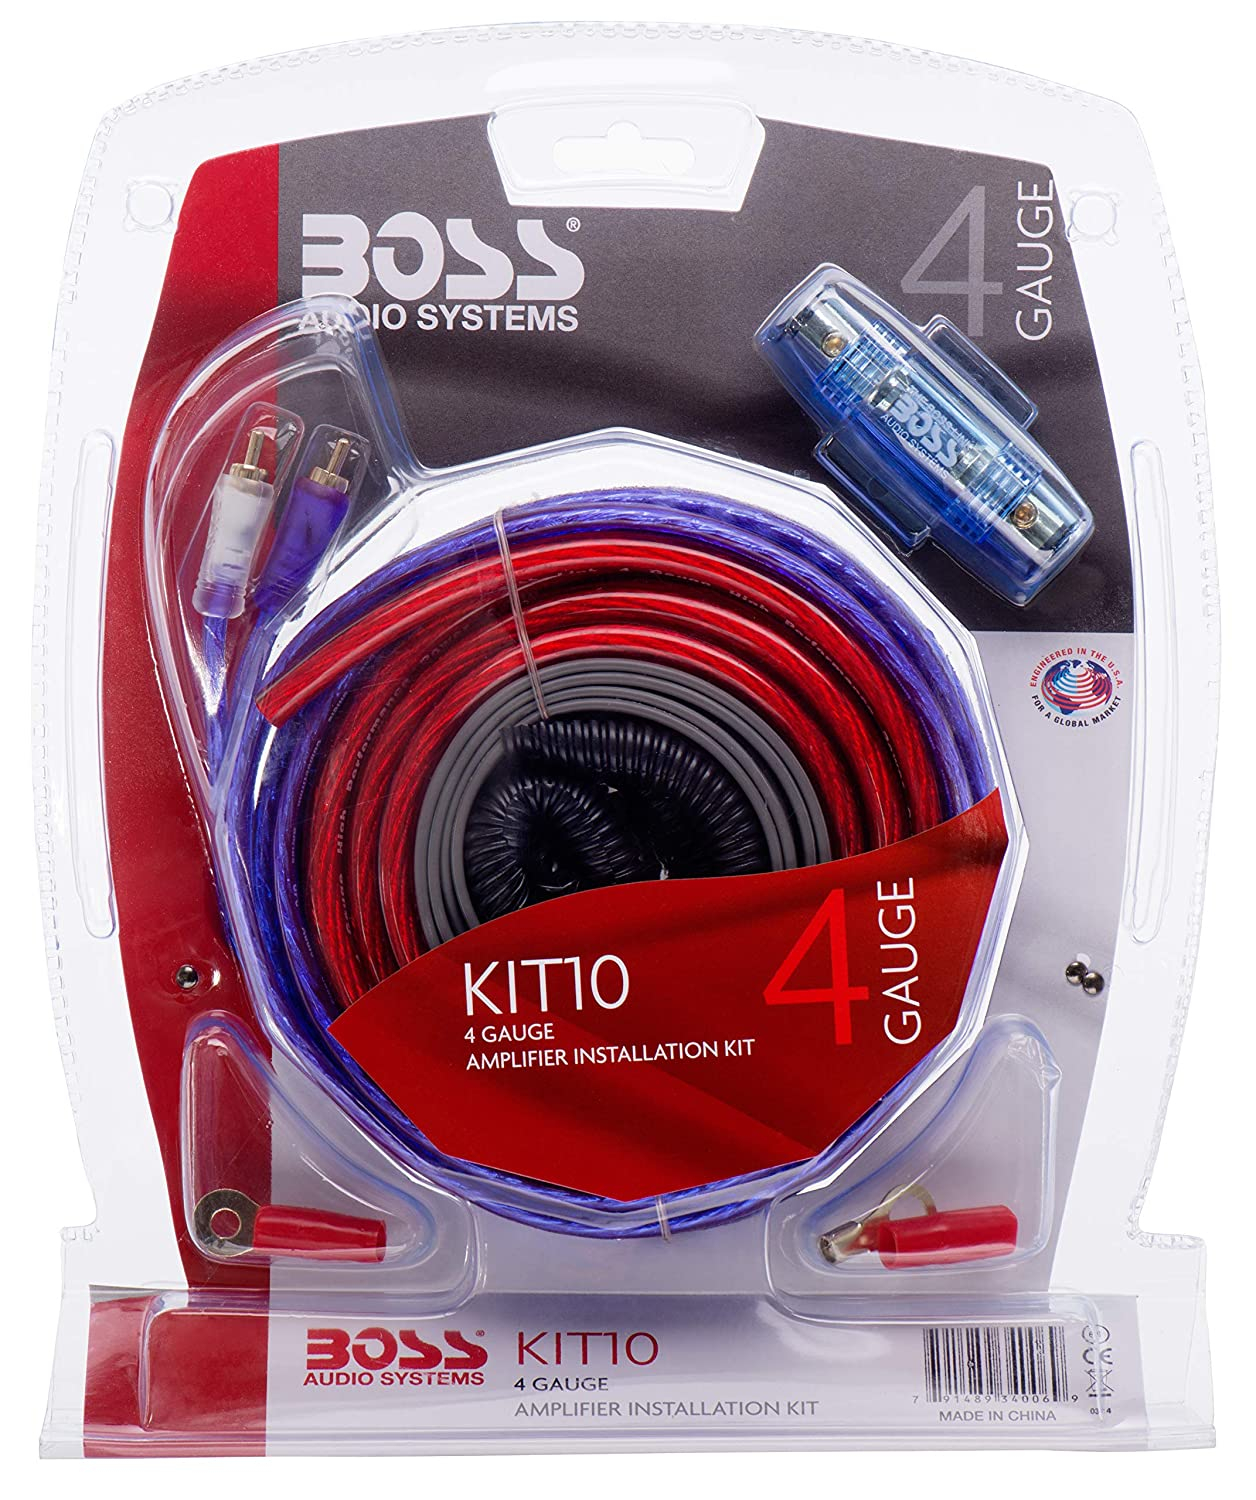 BOSS Audio KIT10 4 Gauge Amplifier Installation Wiring Kit – A Car  Amplifier Wiring Kit Helps You Make Connections and Brings Power to Your  Radio, ...